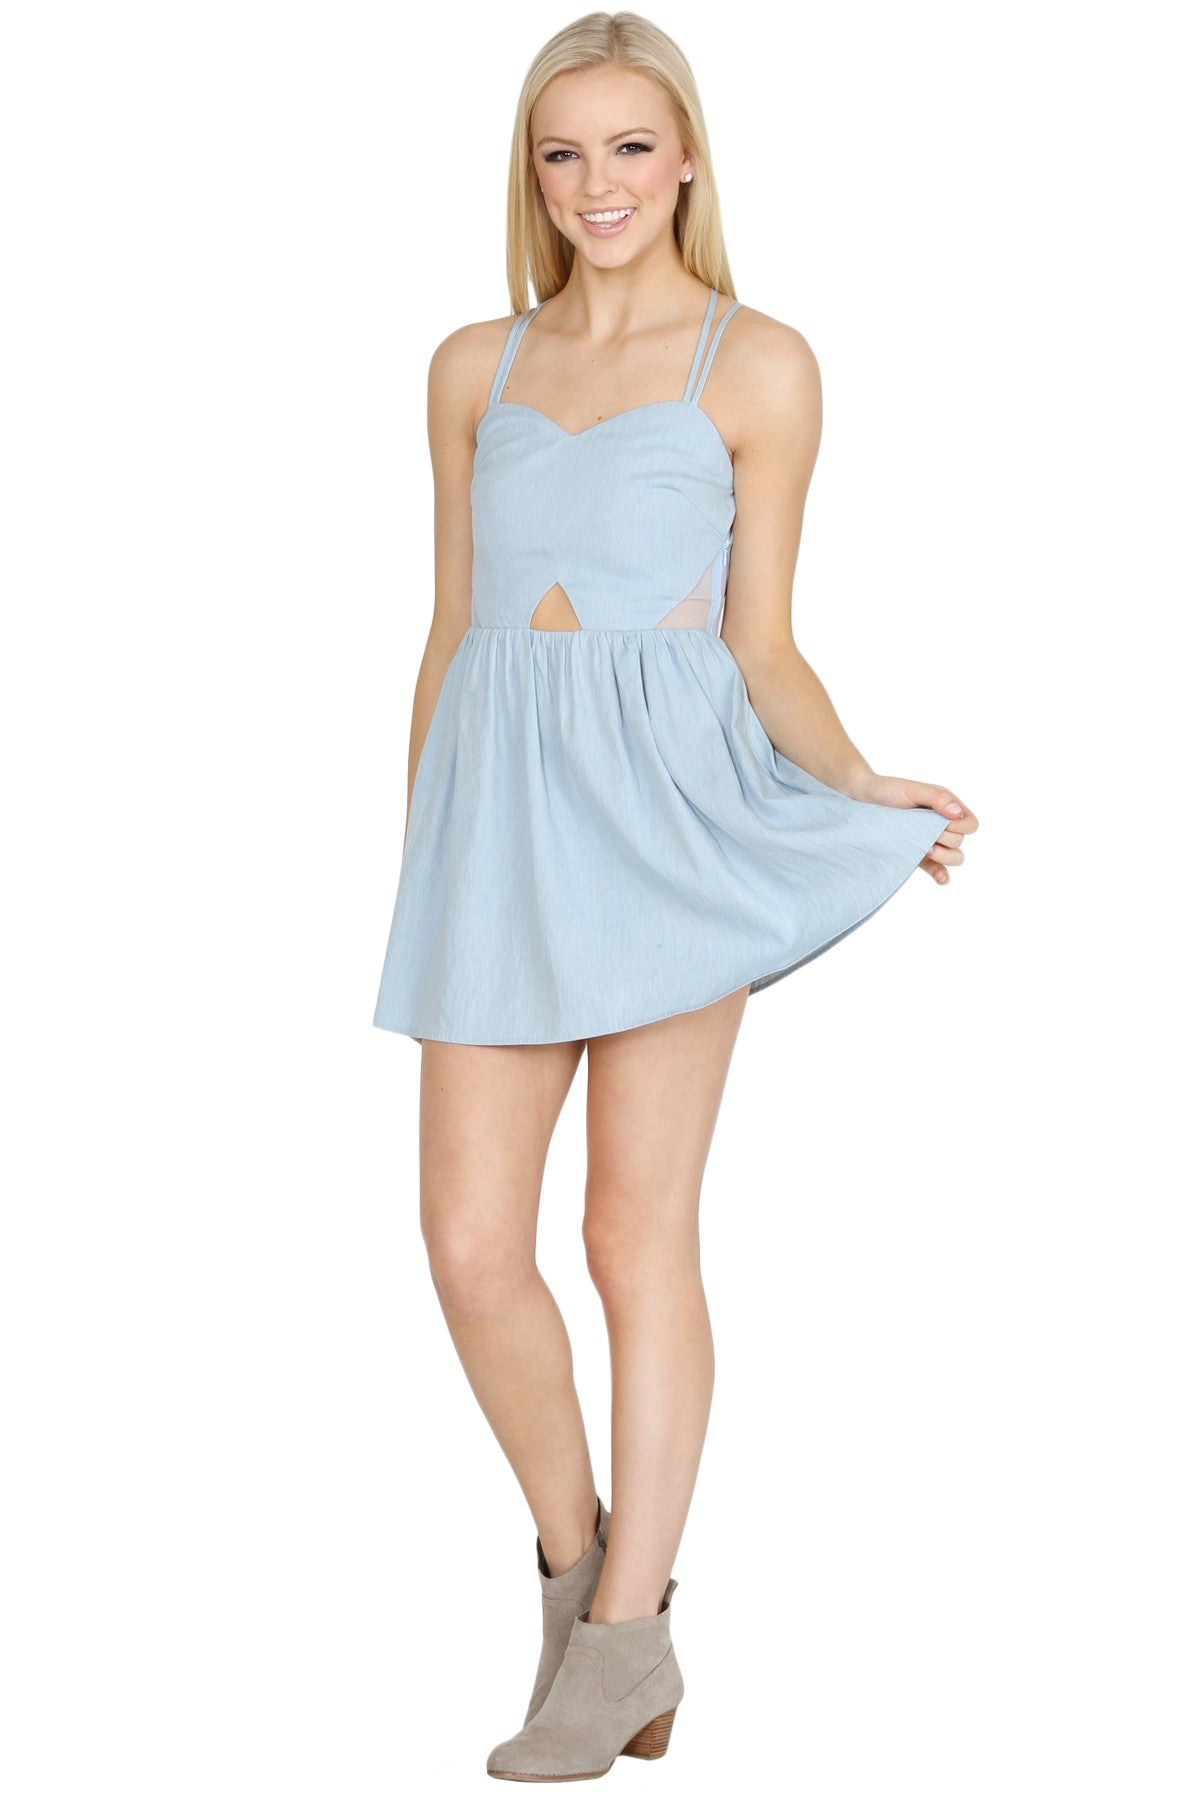 ADALYN DRESS - HARPER KELLEY  - 2